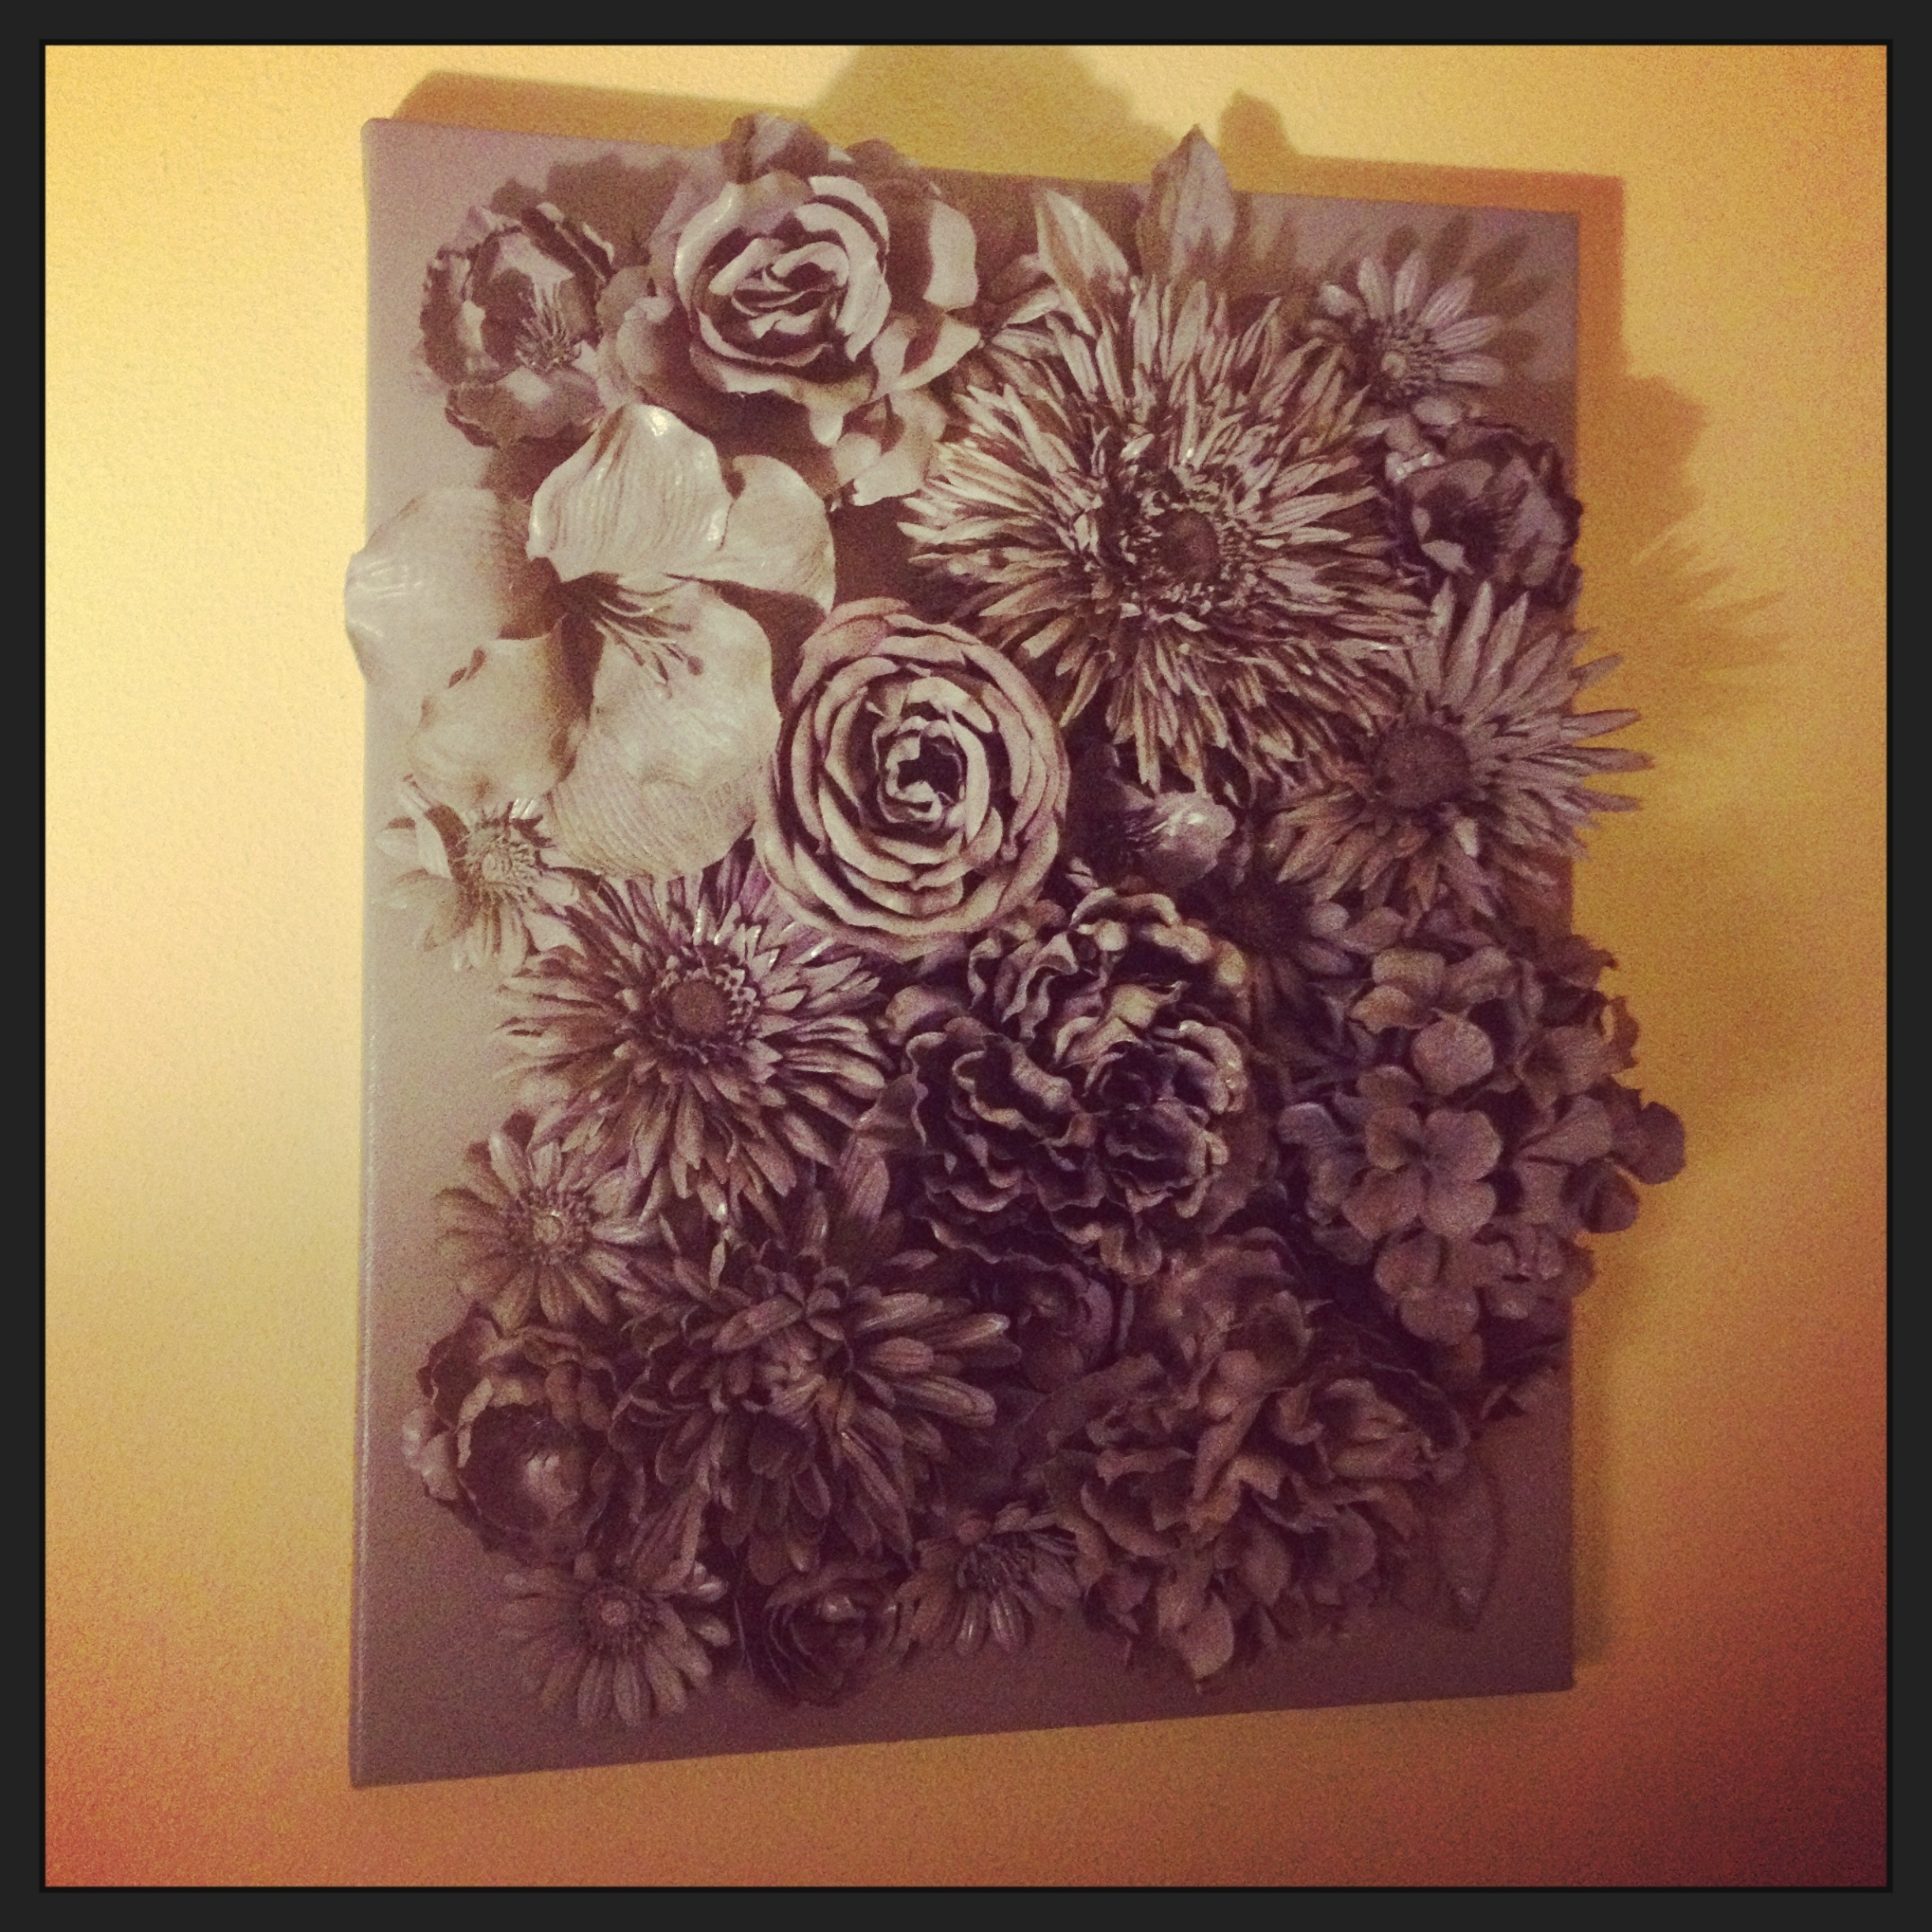 Trendy 3d Wall Art: Faux Flowers Hot Glued To Canvas; Spray Painted With Within 3d Wall Art Canvas (View 6 of 15)